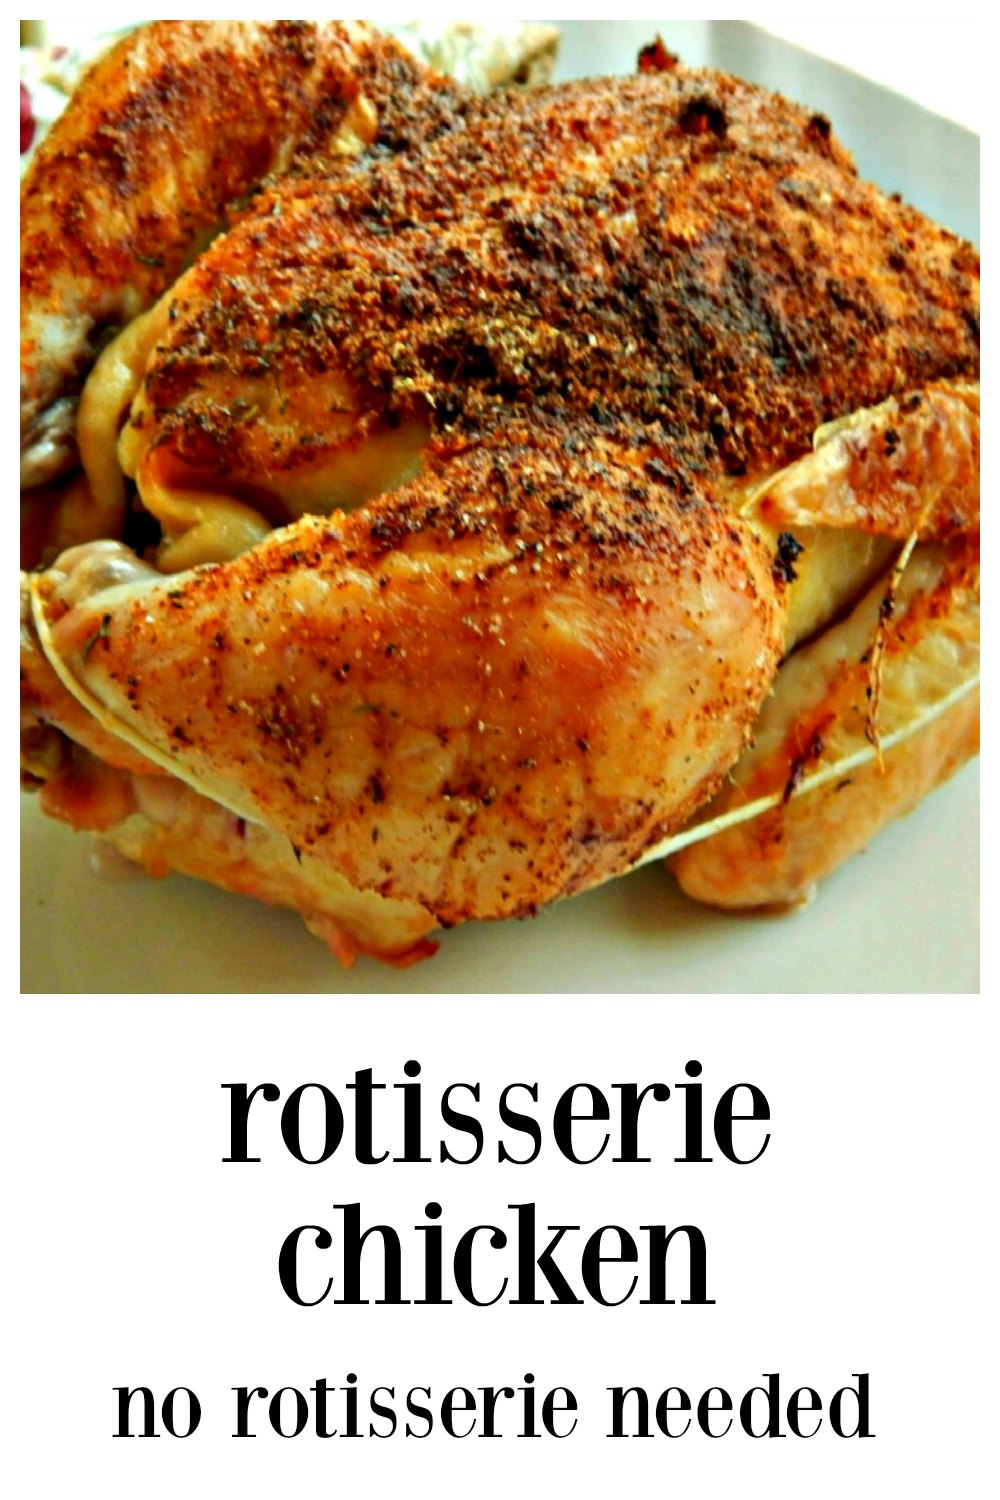 It's super easy to make Rotisserie-Style Chicken (No Rotisserie Needed) at home. It's fabulous, you control the ingredients & it can cost less than store-bought, #NoRotisserieChicken, #RotisserieChickenRecipe #MakeRotisserieChicken